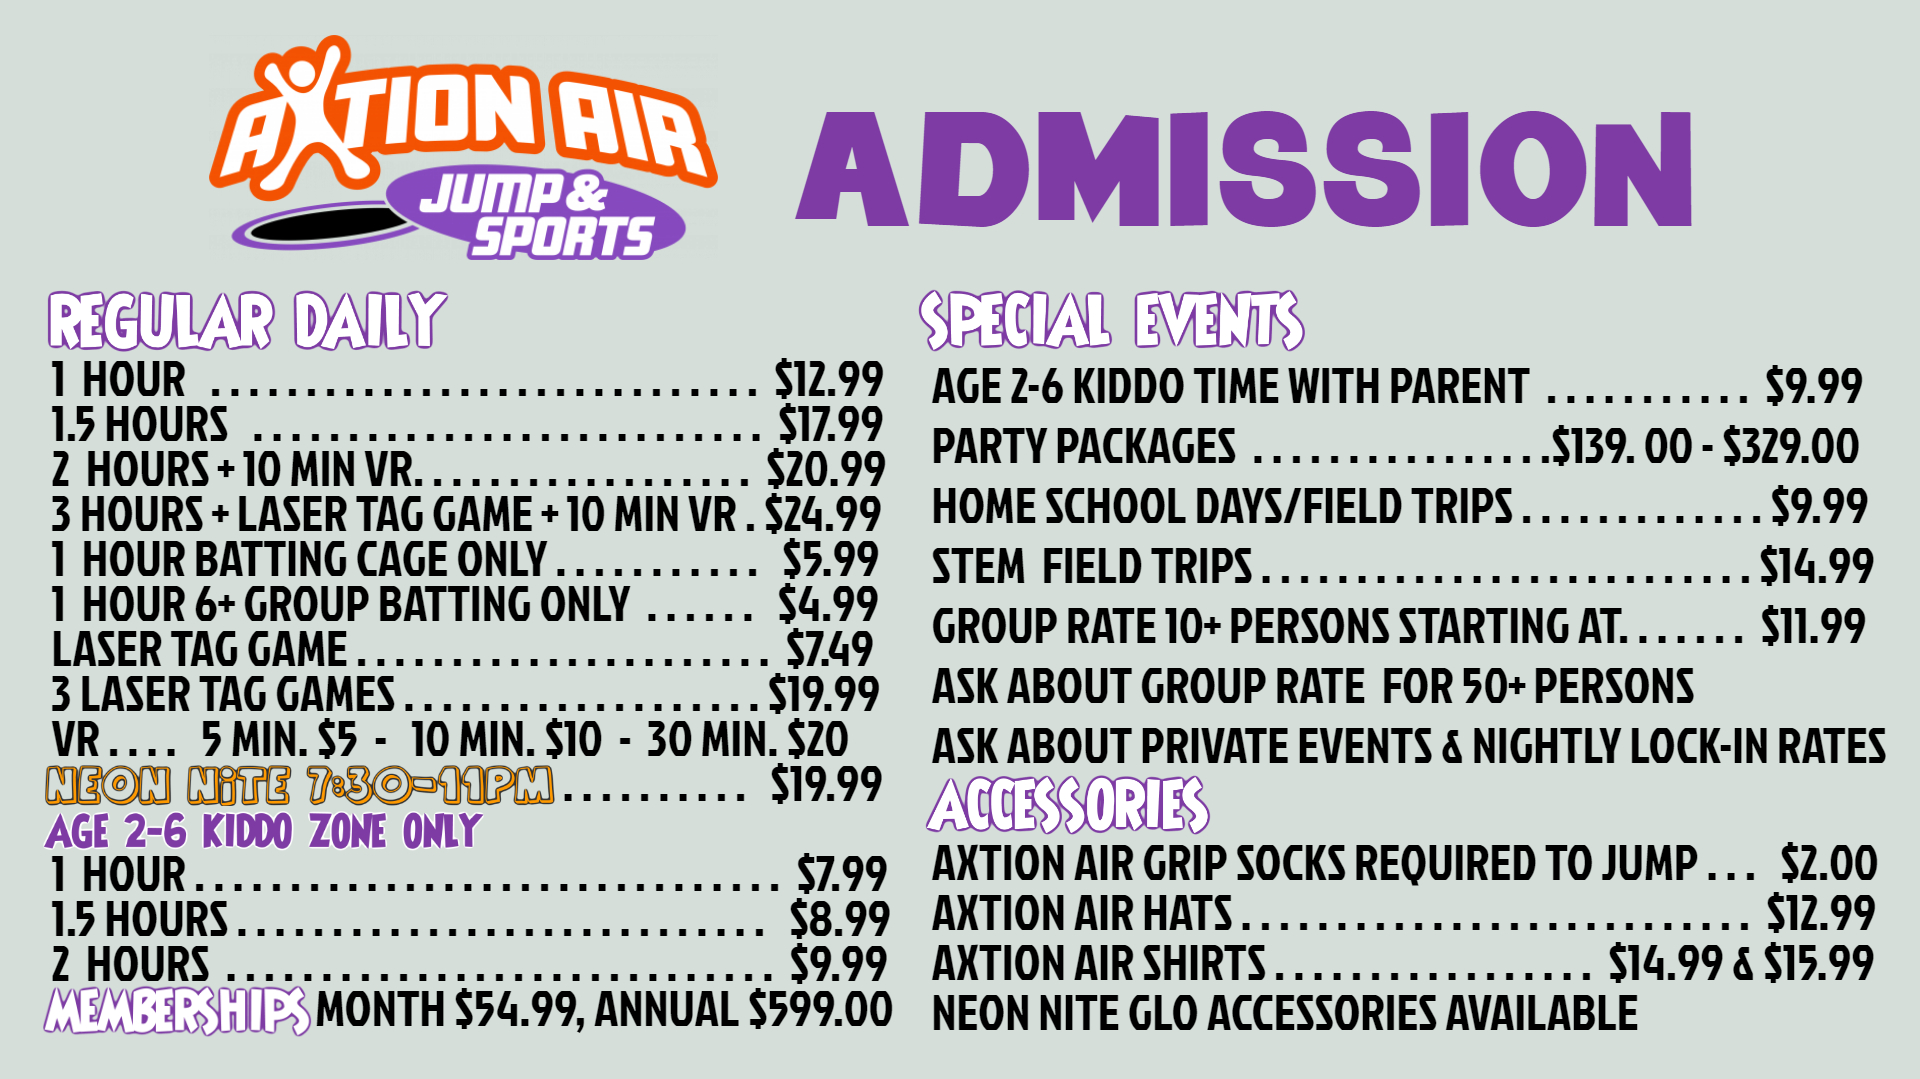 Admission Prices for Park